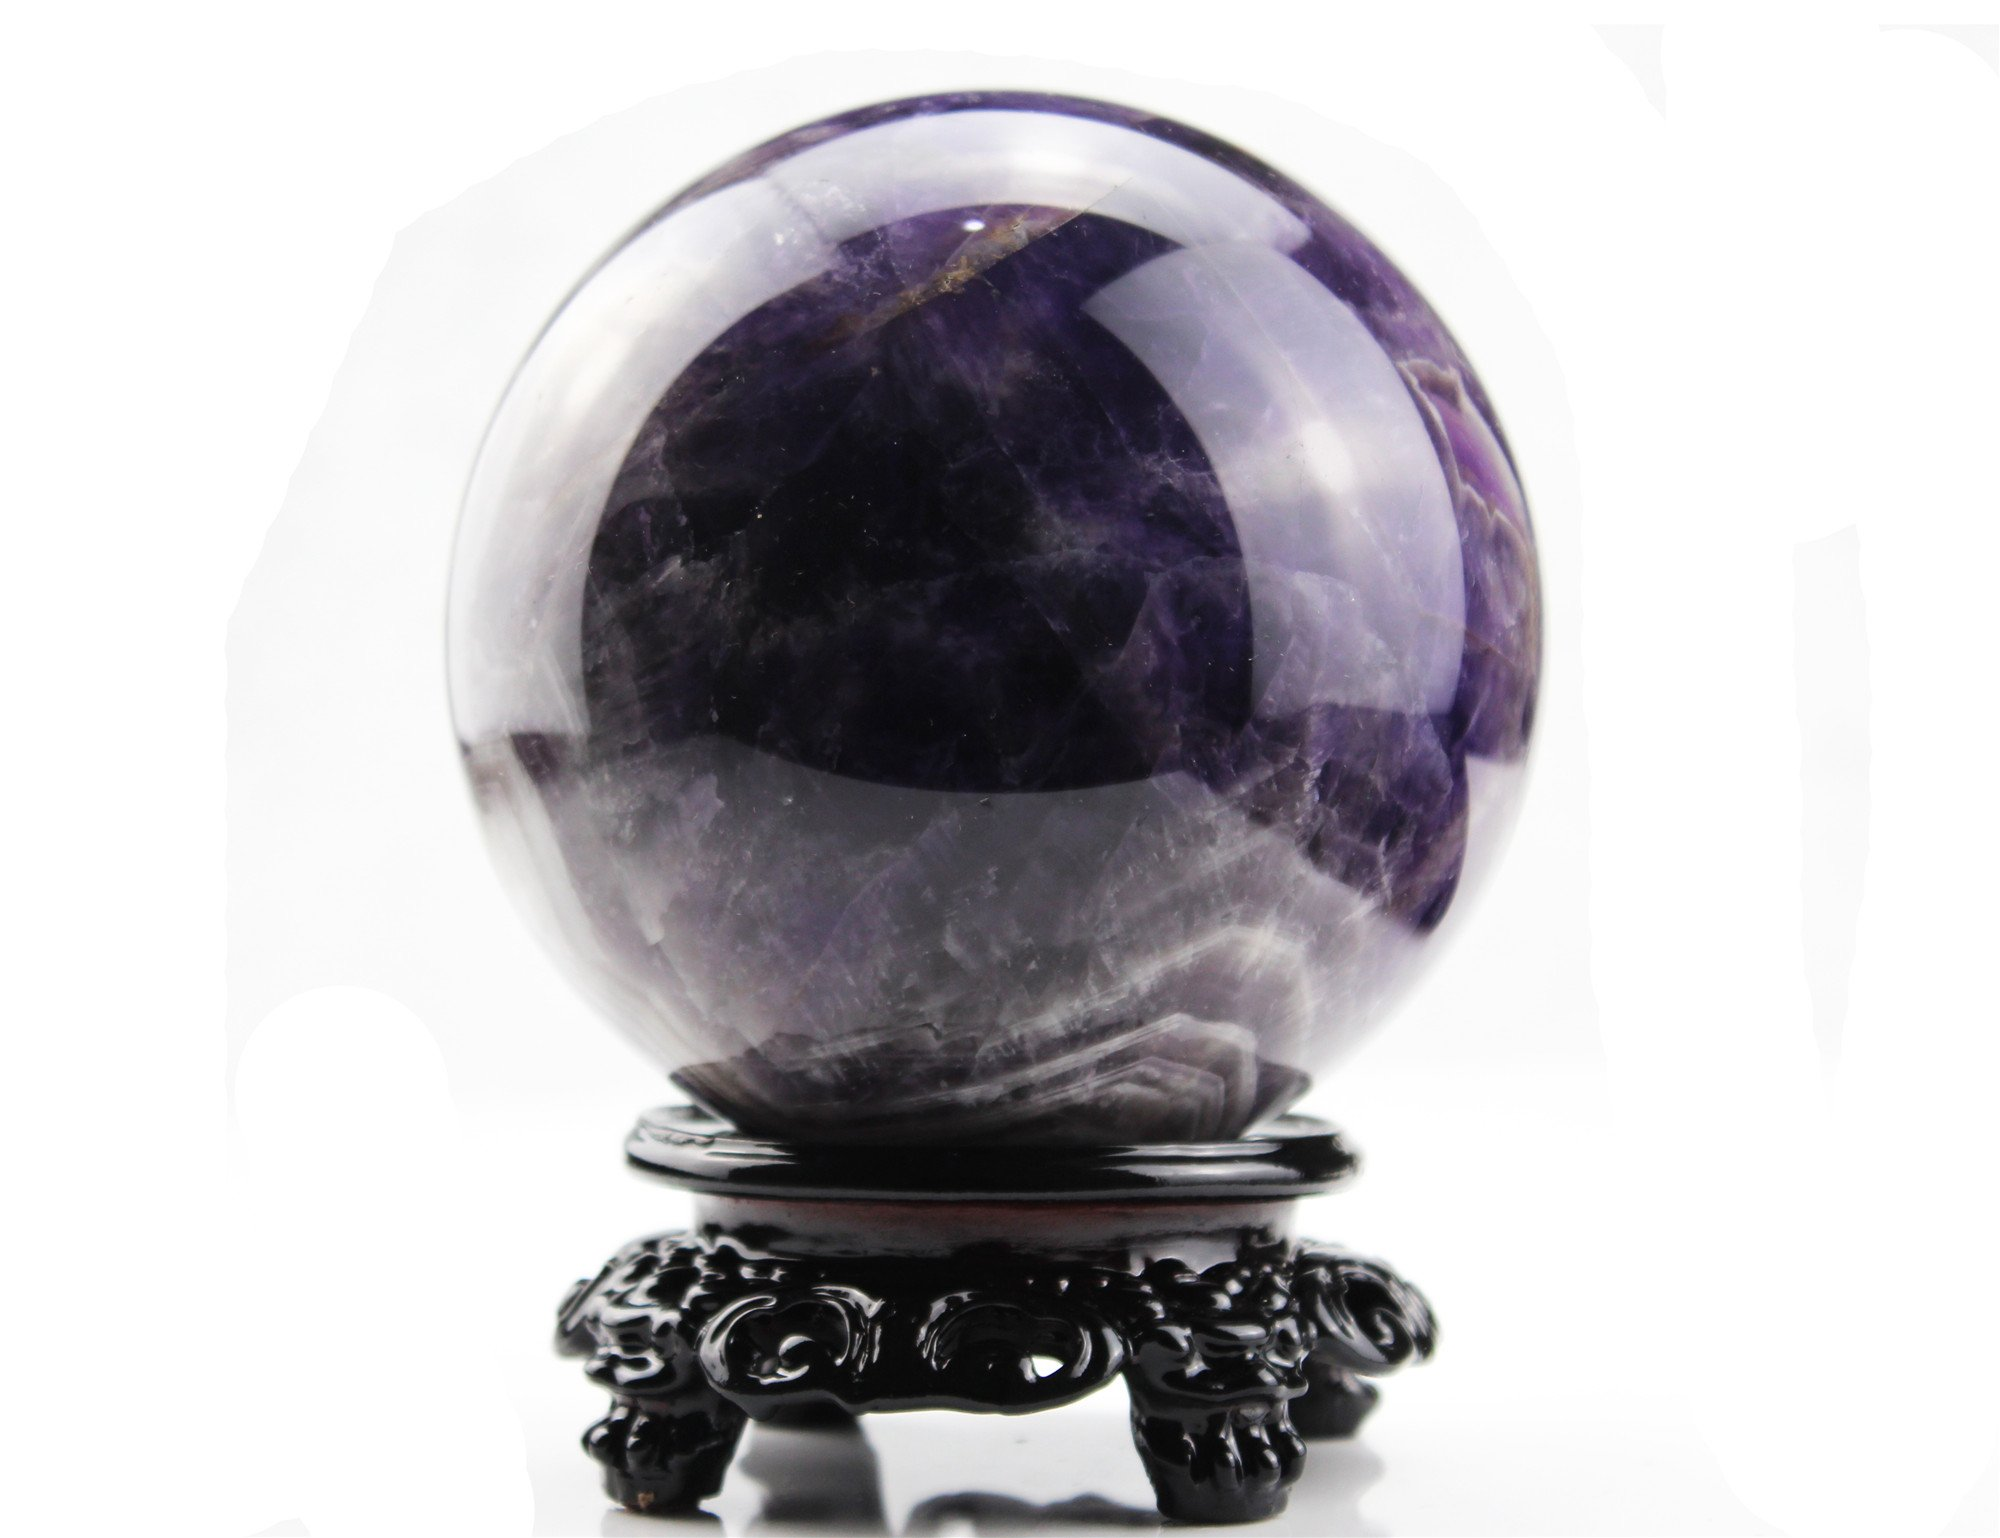 DeYue 4.3inch Natural Amethyst Dream Magic Crystal Ball Sphere with Stand Foundation for Fengshui, Meditation, Crystal Healing, Divination, Home Decoration by DeYue